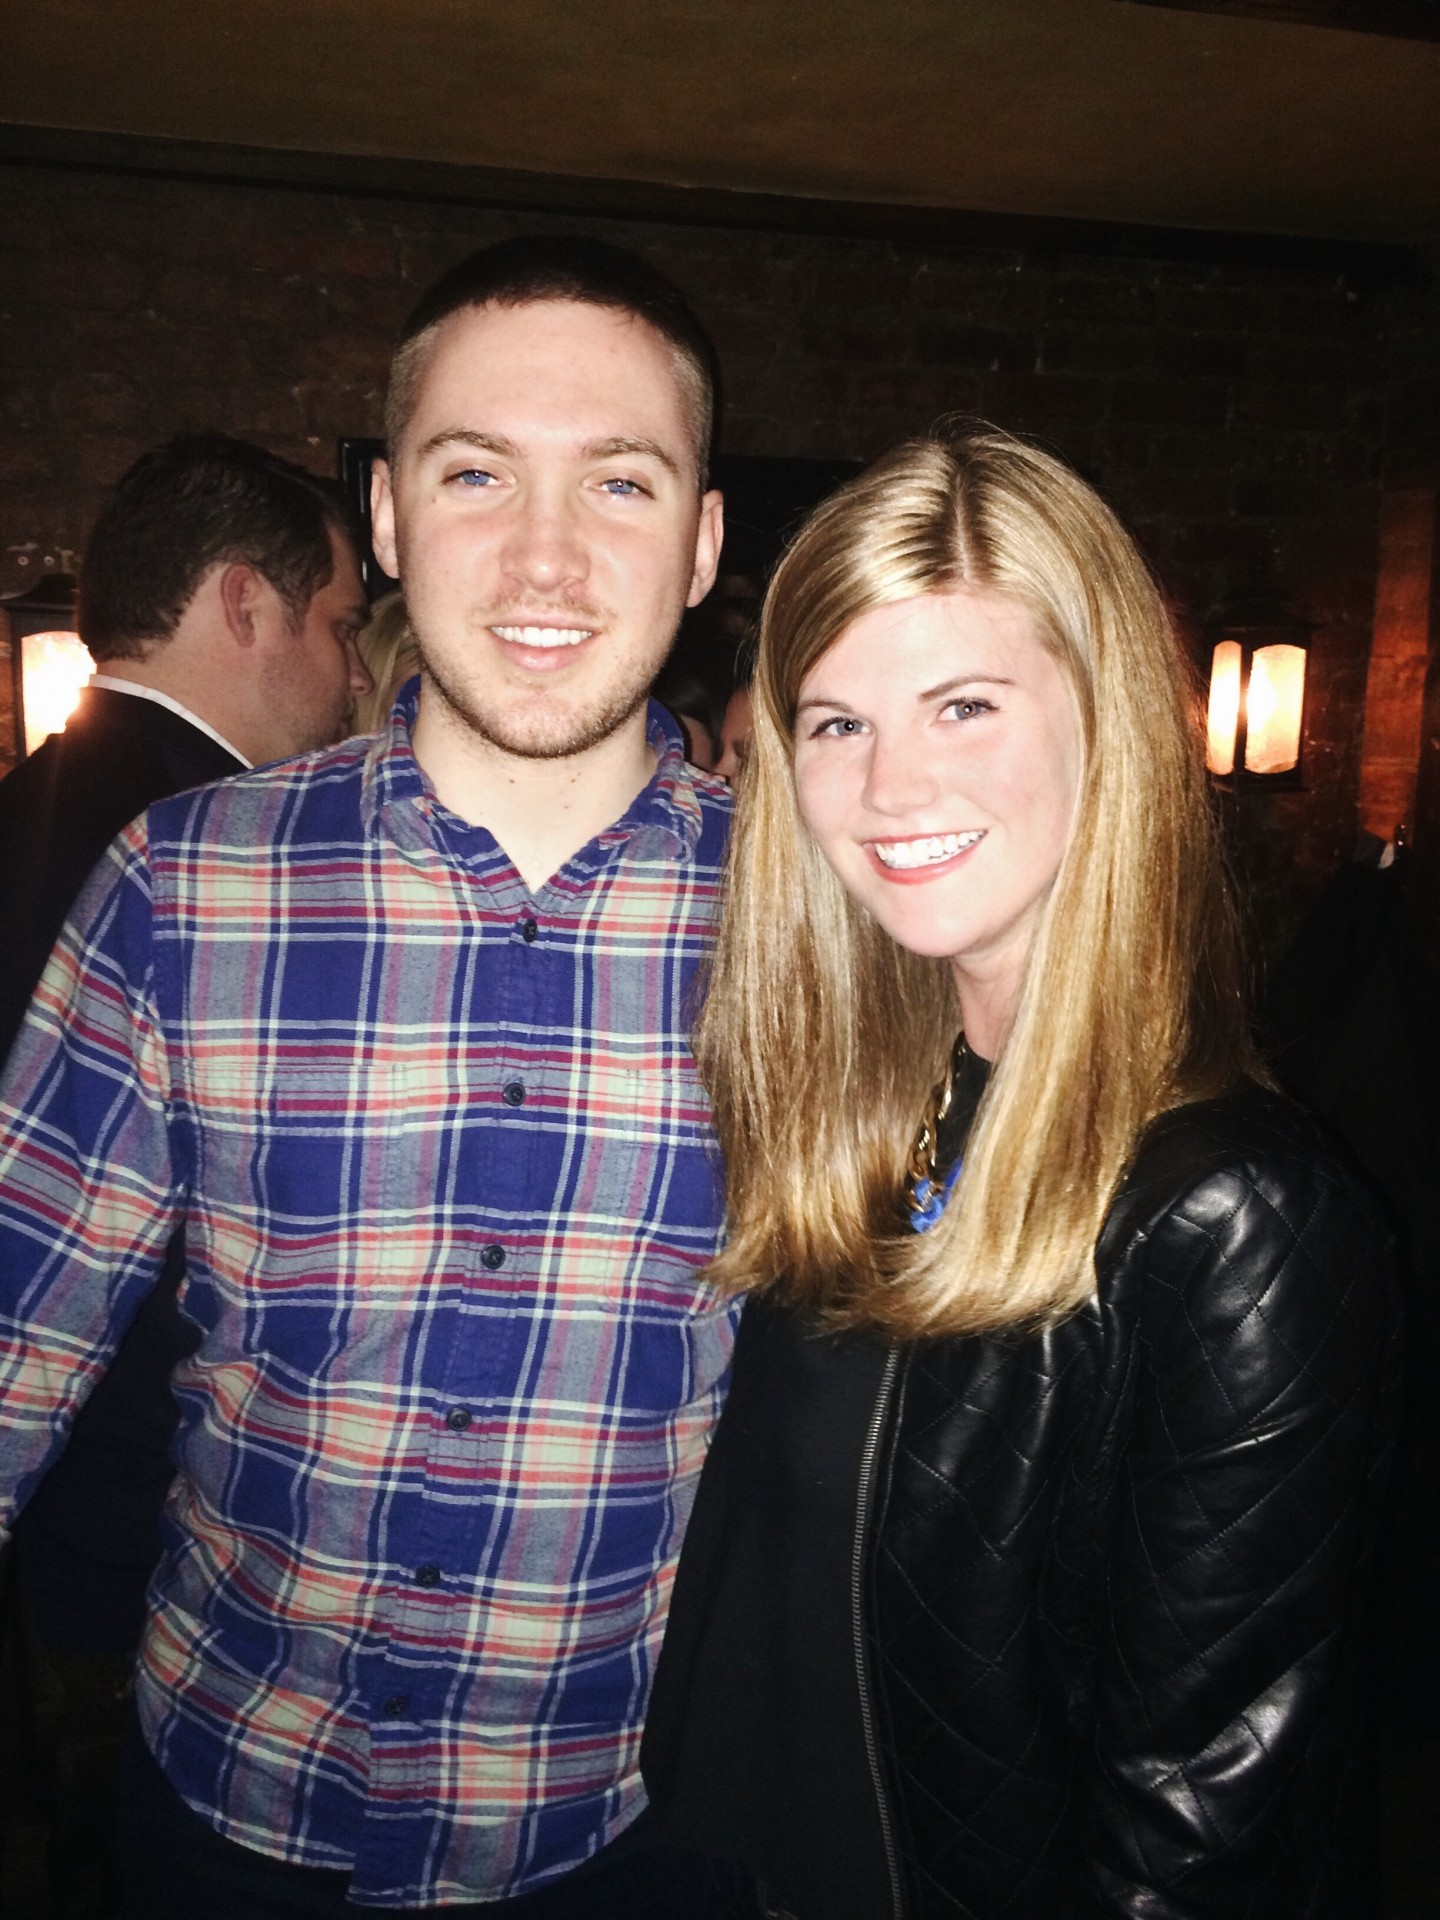 Lifestyle blogger Mollie Sheperdson shares a glimpse into her relationship with Connor on their 3 year anniversary